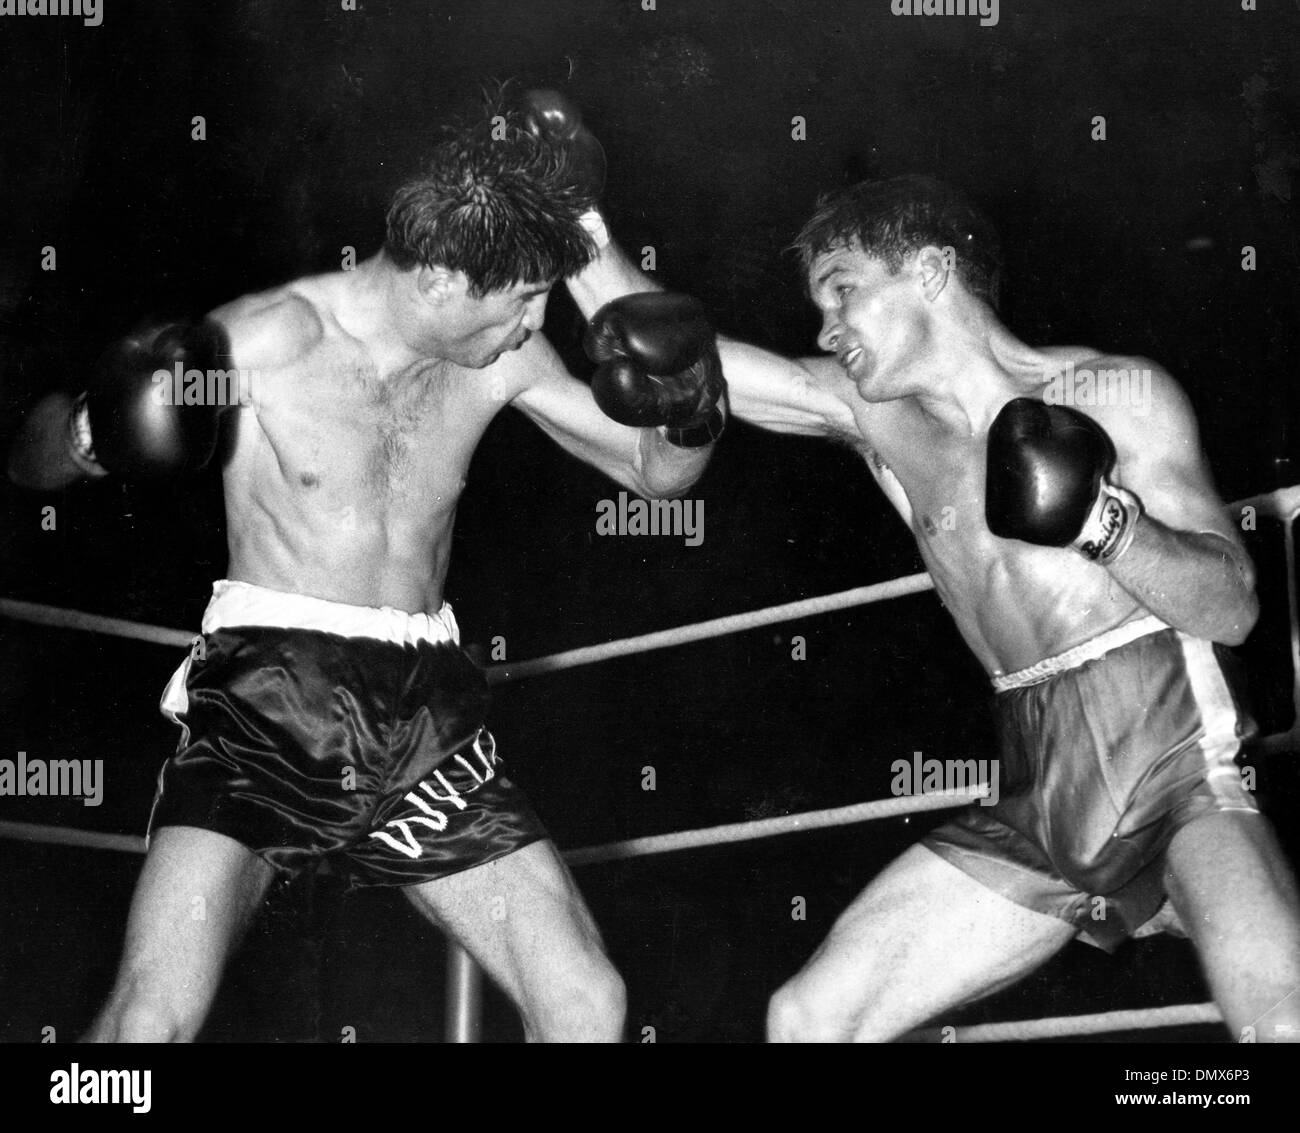 July 9, 1957 - London, England, U.K. - DAVE CHARNLEY was a lightweight boxer. Known as 'The Dartford Destroyer' Stock Photo